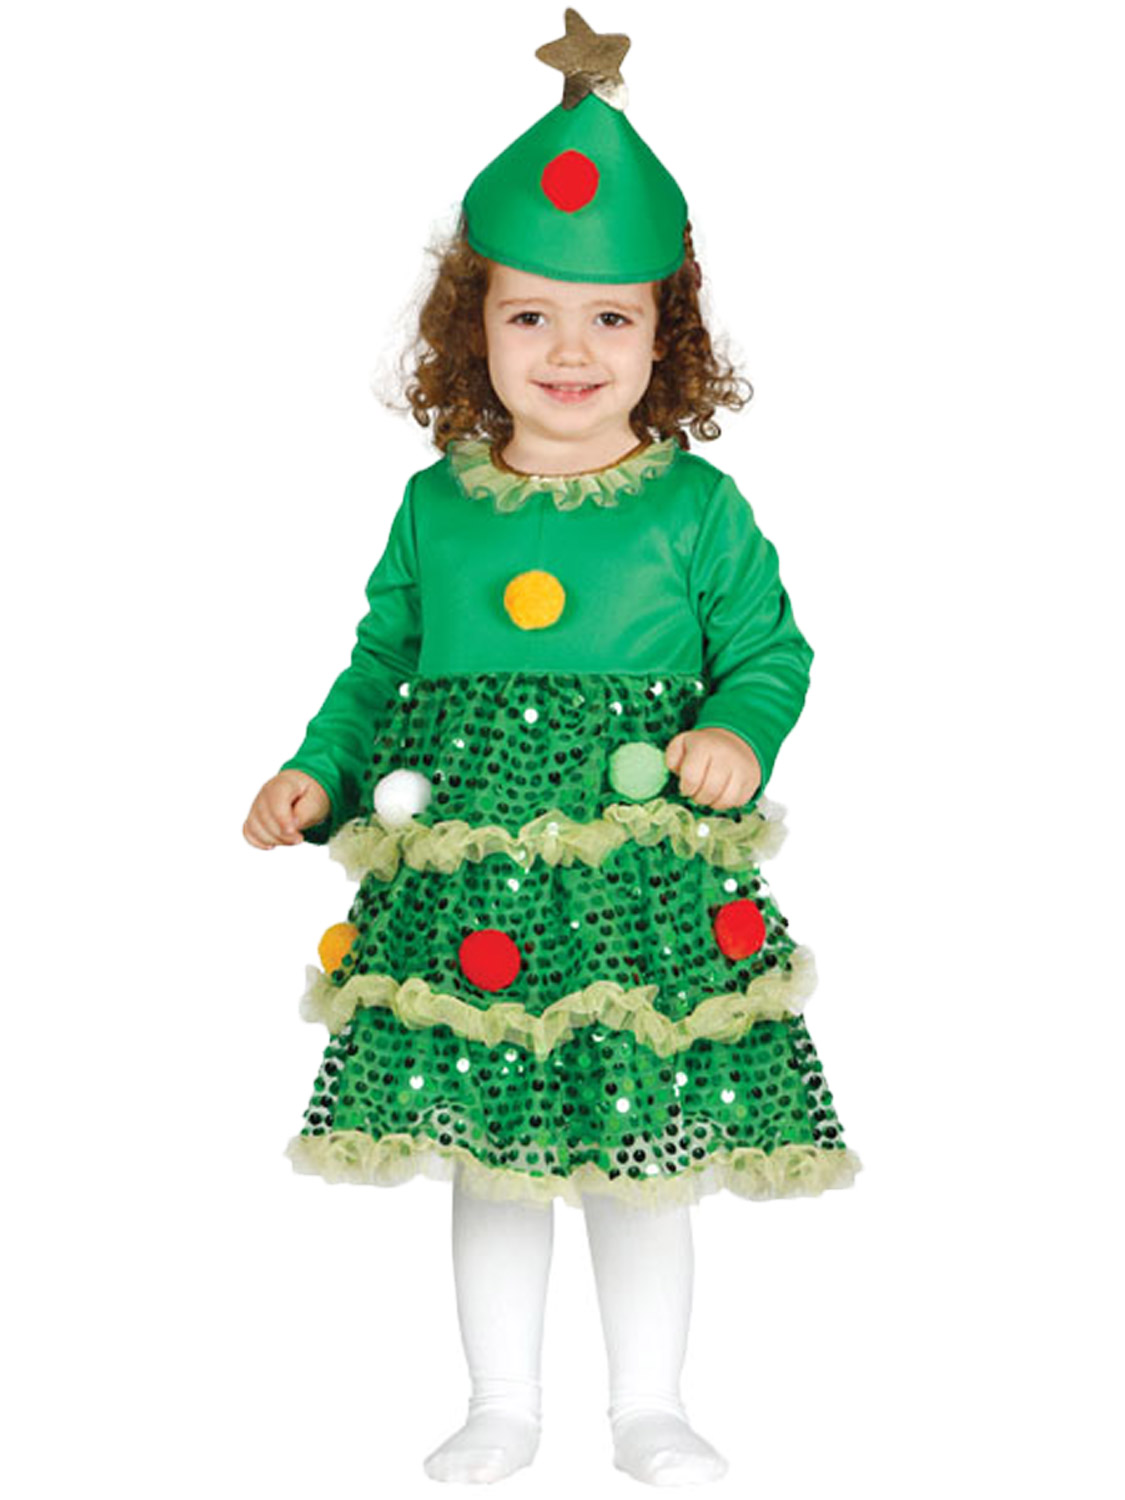 Christmas Tree Costume.Details About Girls Christmas Tree Costume Childs Toddler Xmas Fancy Dress Kids Novelty Outfit